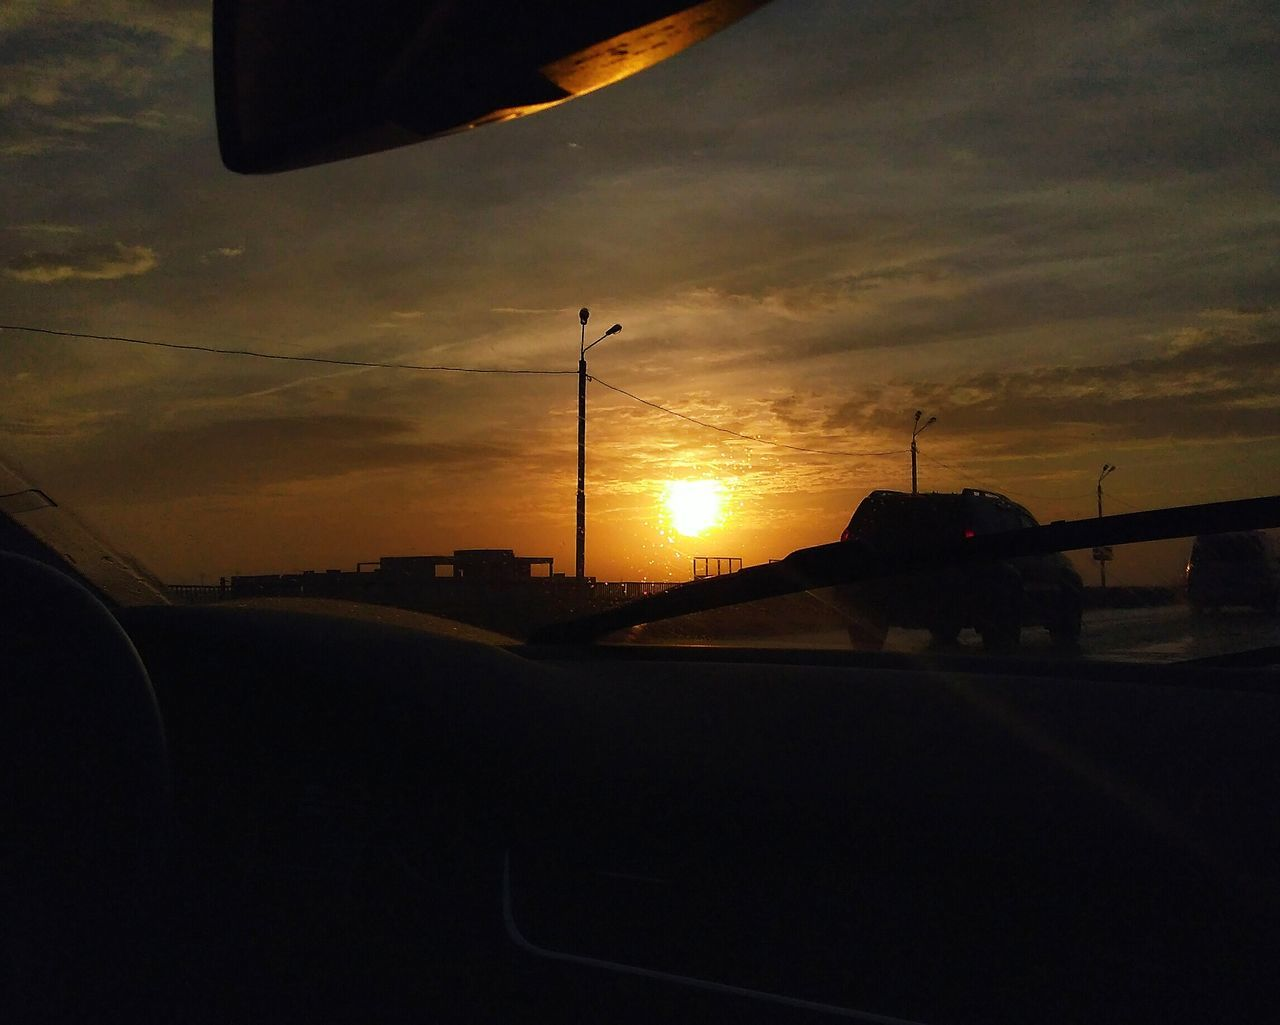 Car Sunset No People Sky Road Nature Dramatic Sky Beauty In Nature Outdoors Photo Magic Moments Enjoying LifePerfect View Sunset_captures Moment Sunset Silhouettes PhonePhotography Evening View Sunset_collection Nature_collection Emotions Wintertime Nature Beauty In Nature